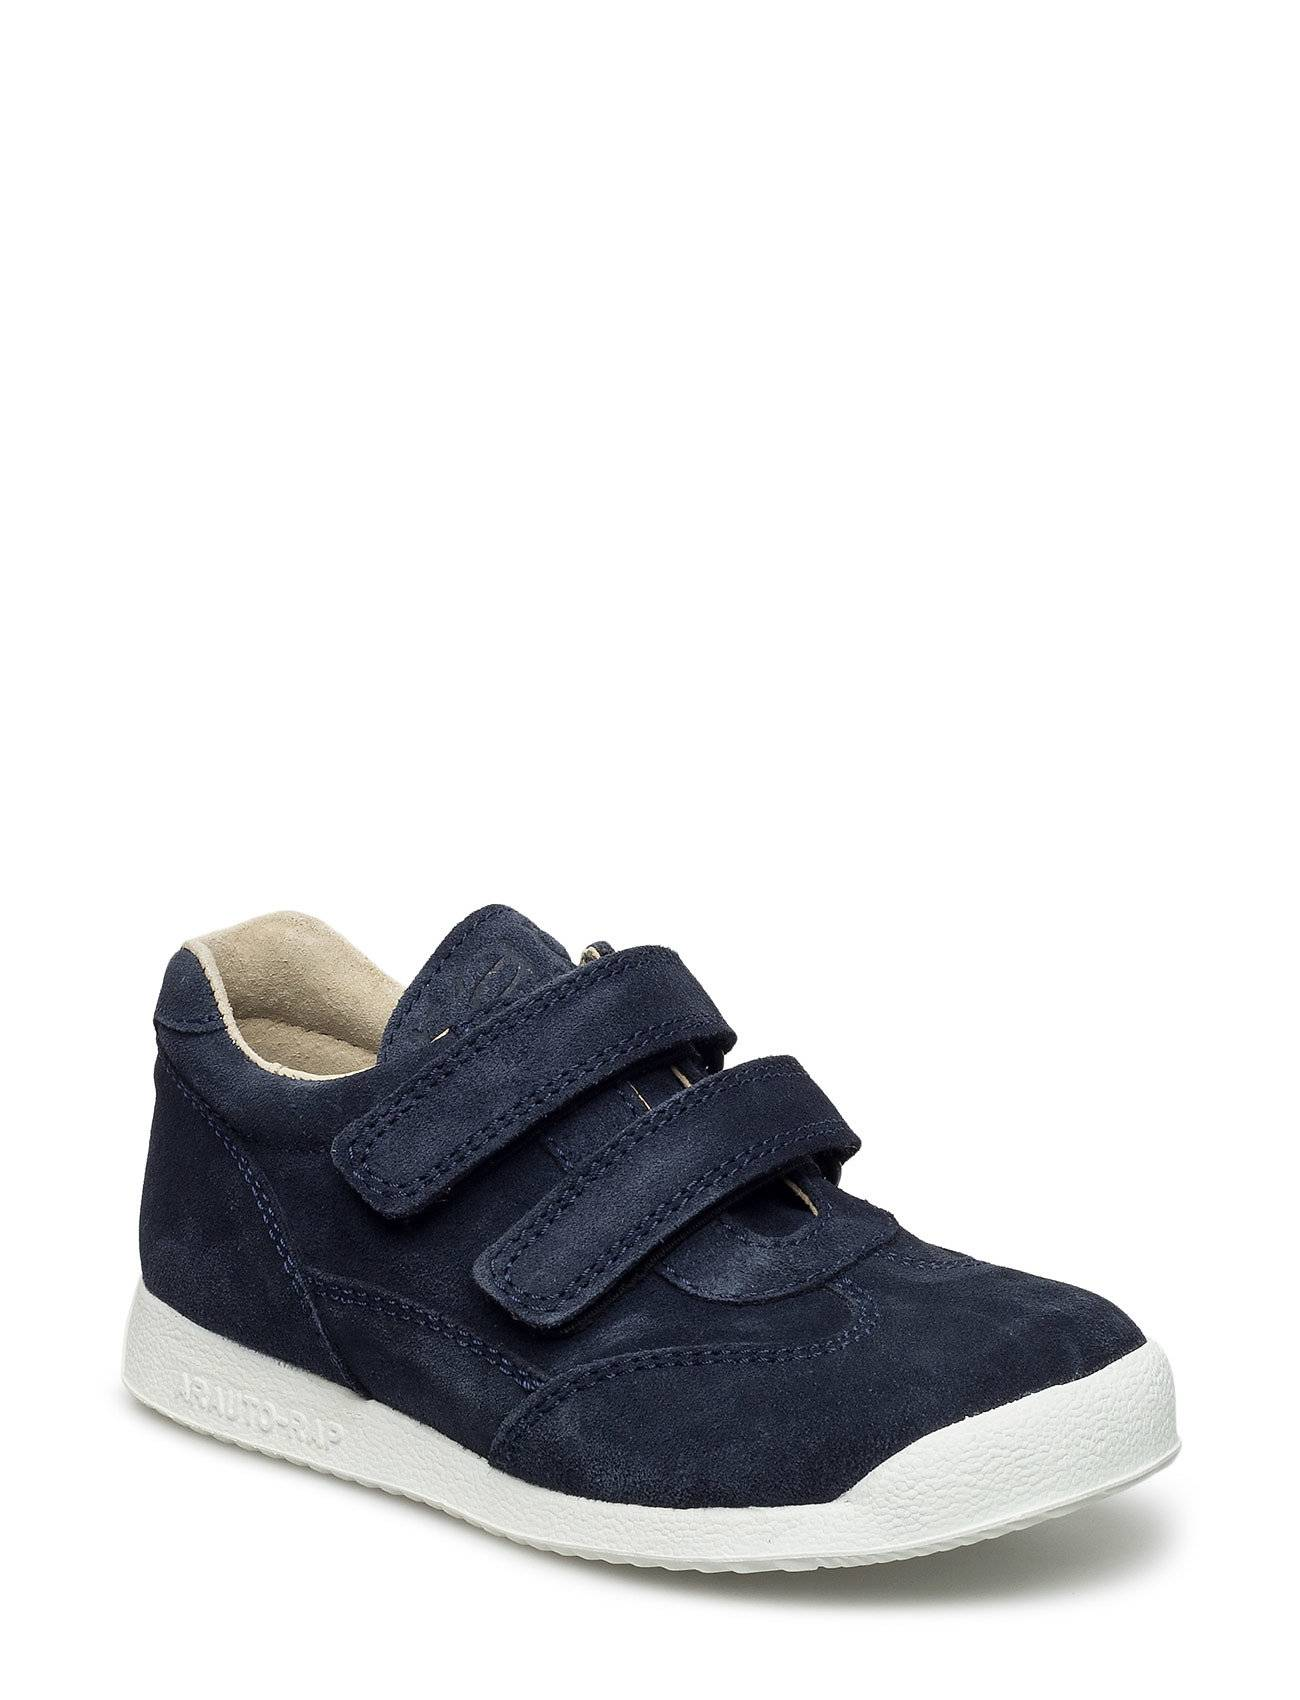 Arauto RAP Ecological Sneaker, Extra Wide Fit